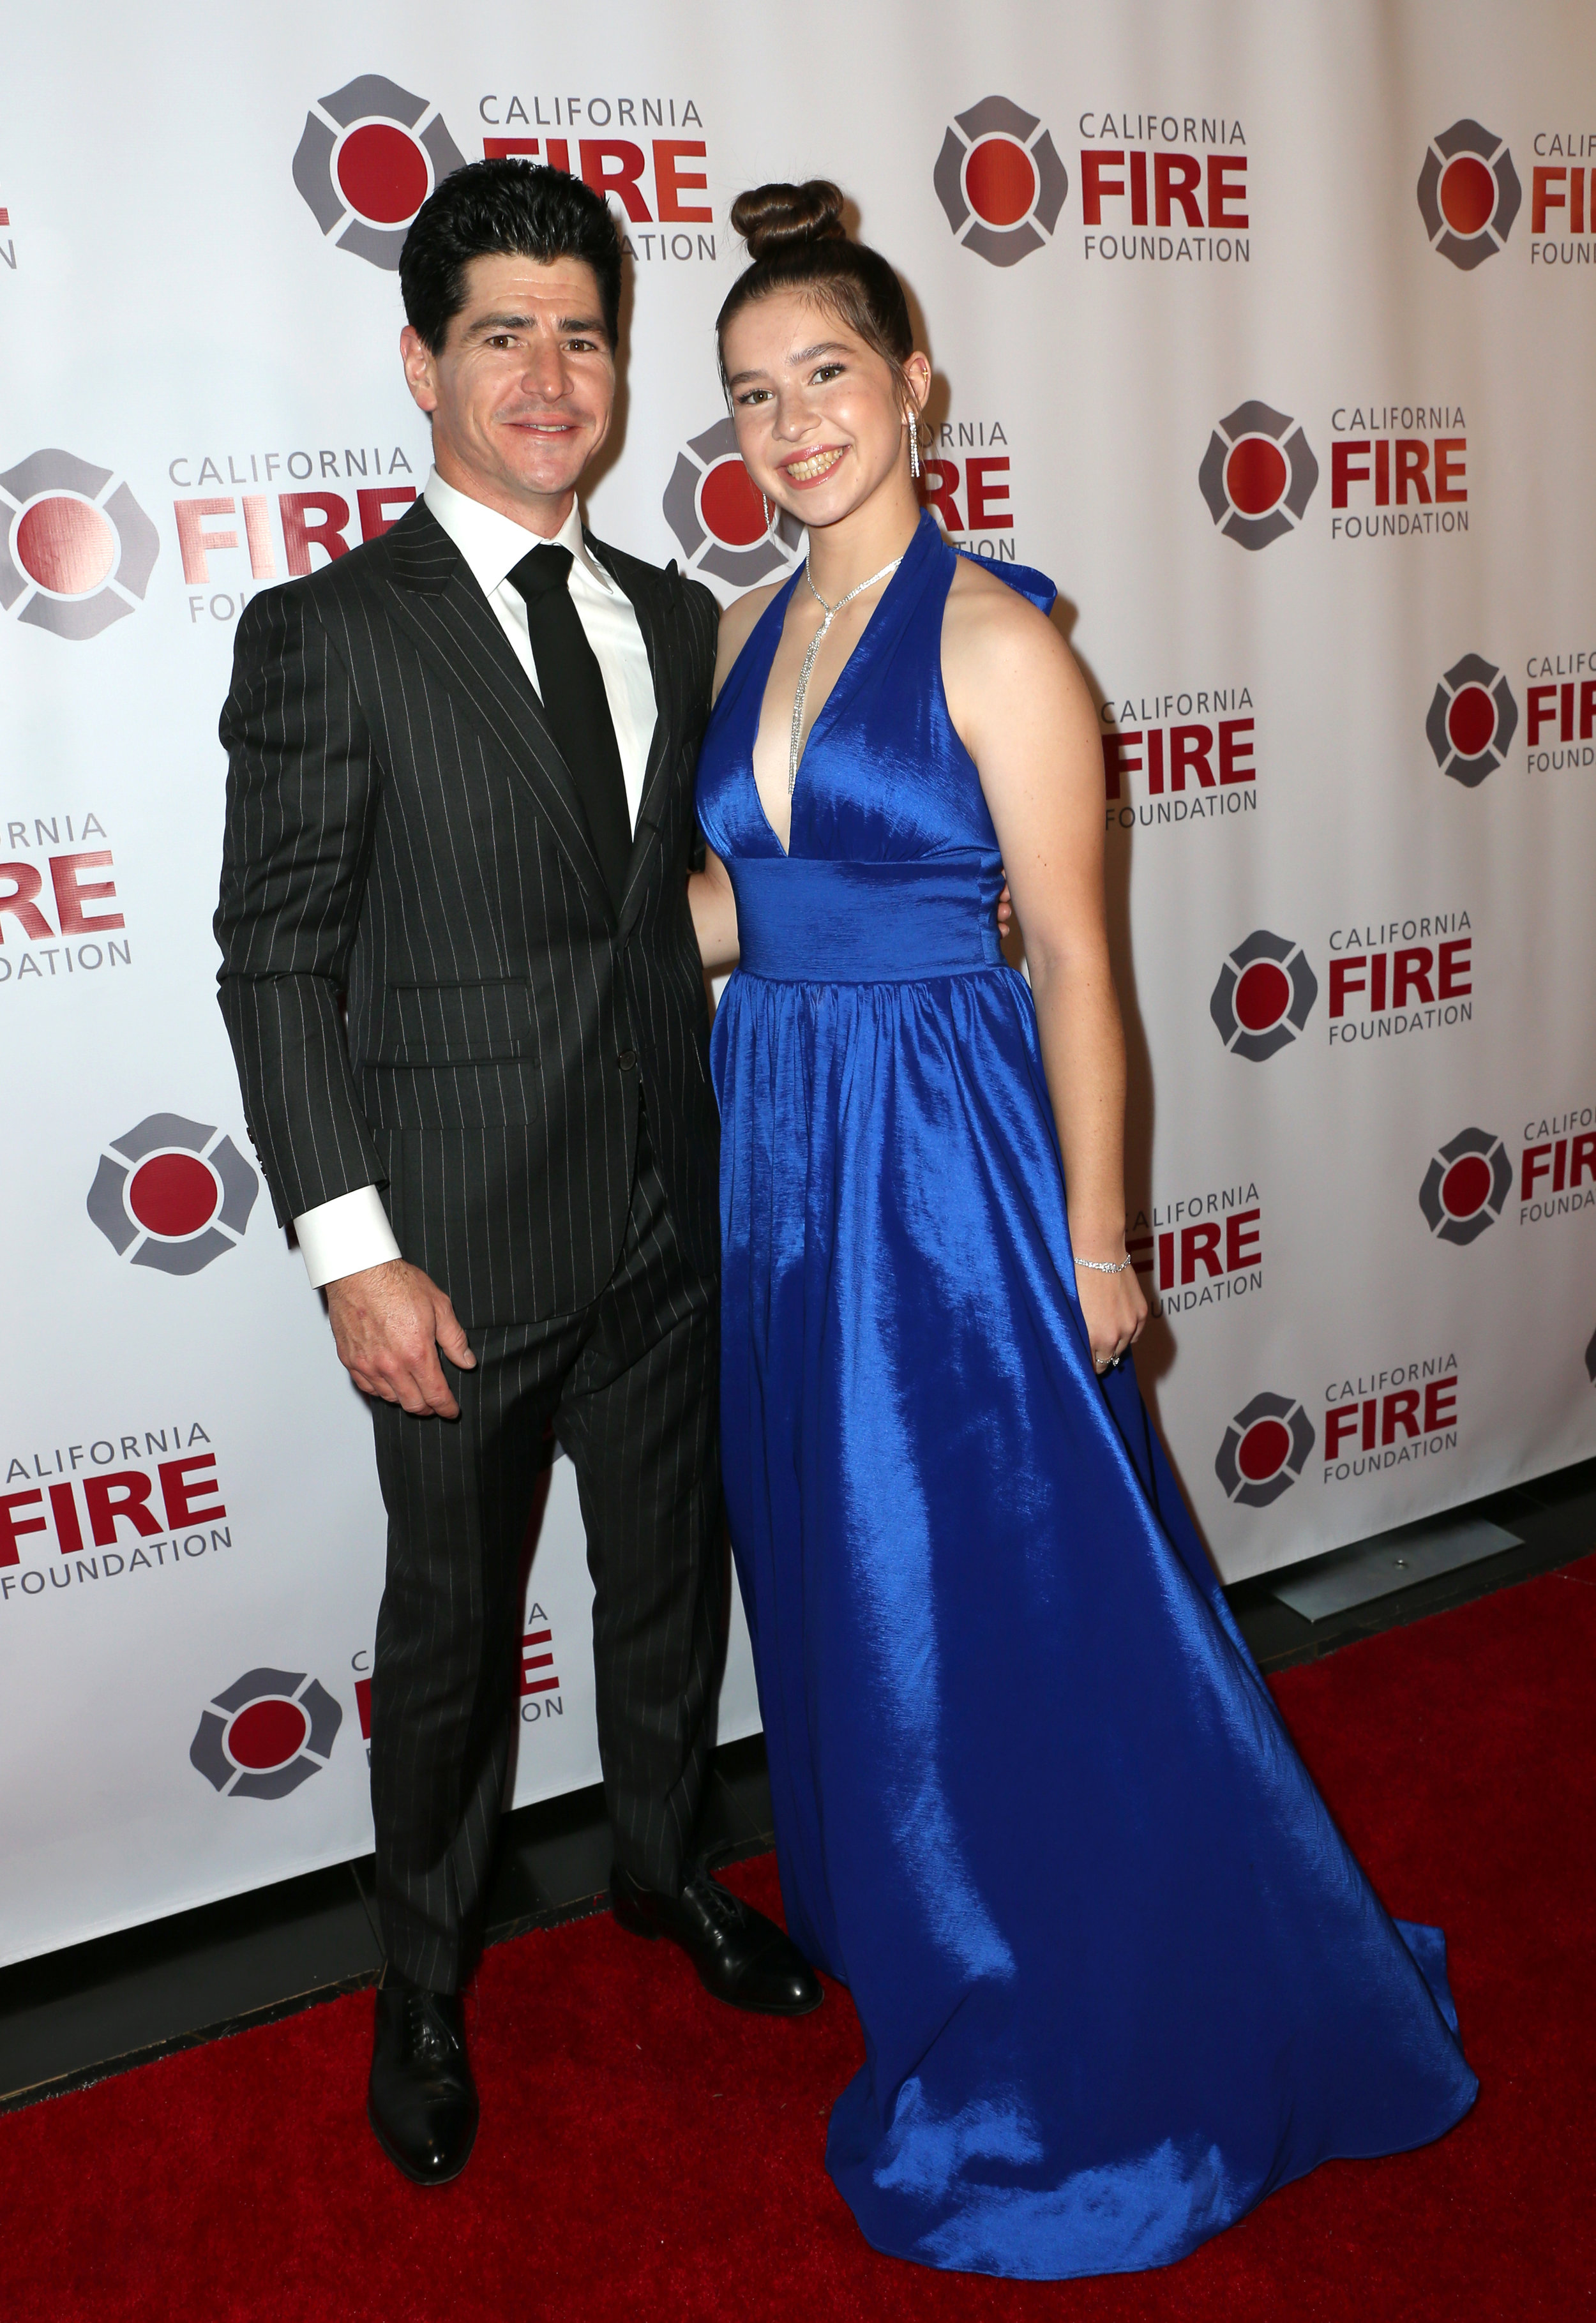 Photo: Getty Images on behalf of California Fire Foundation